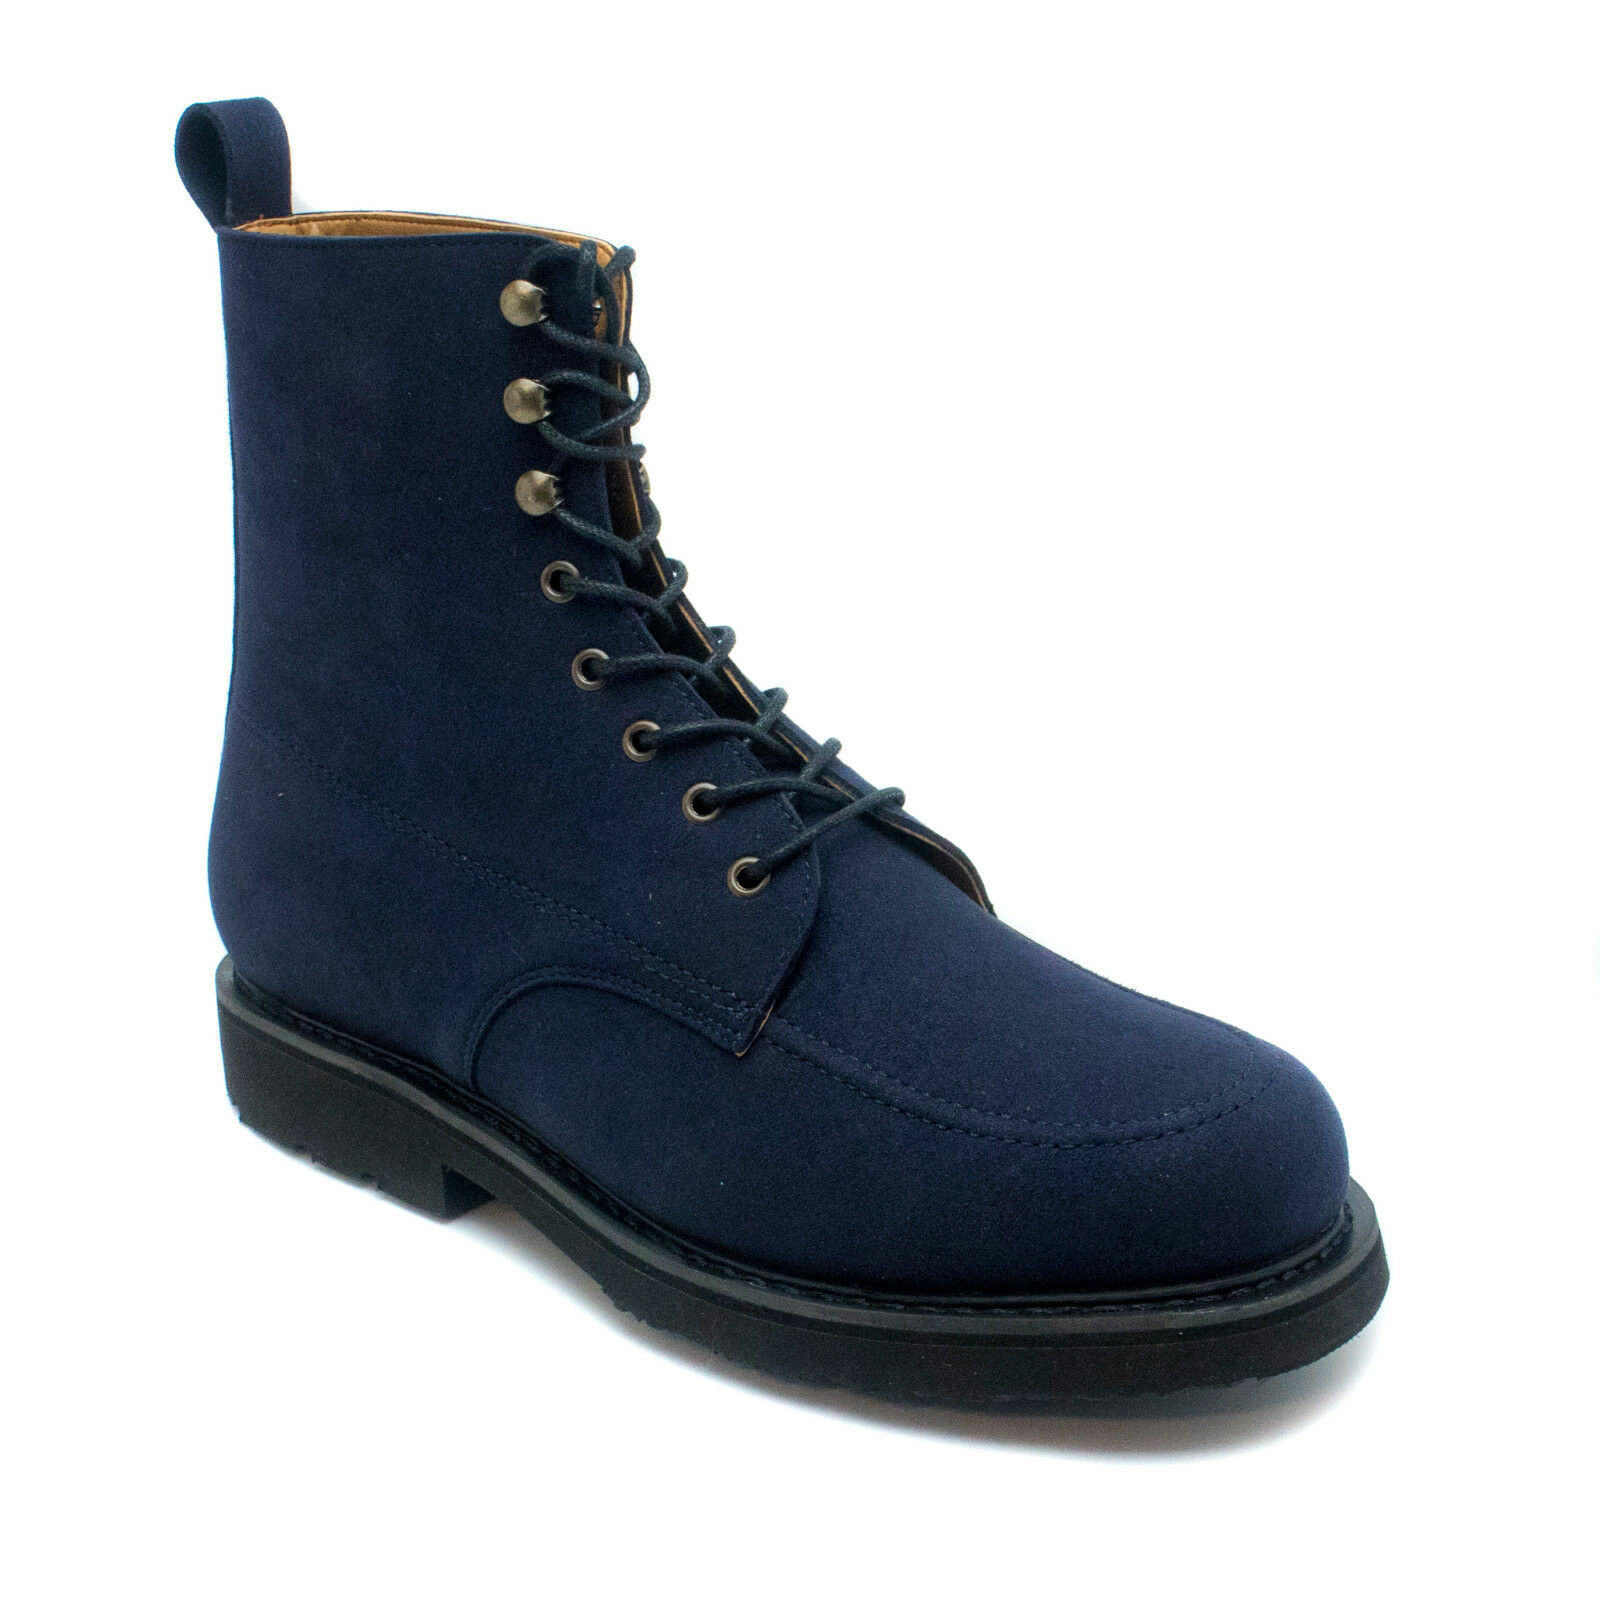 Man vegan short boot round plain toe made with eco micro-suede Sewn Goodyear sys